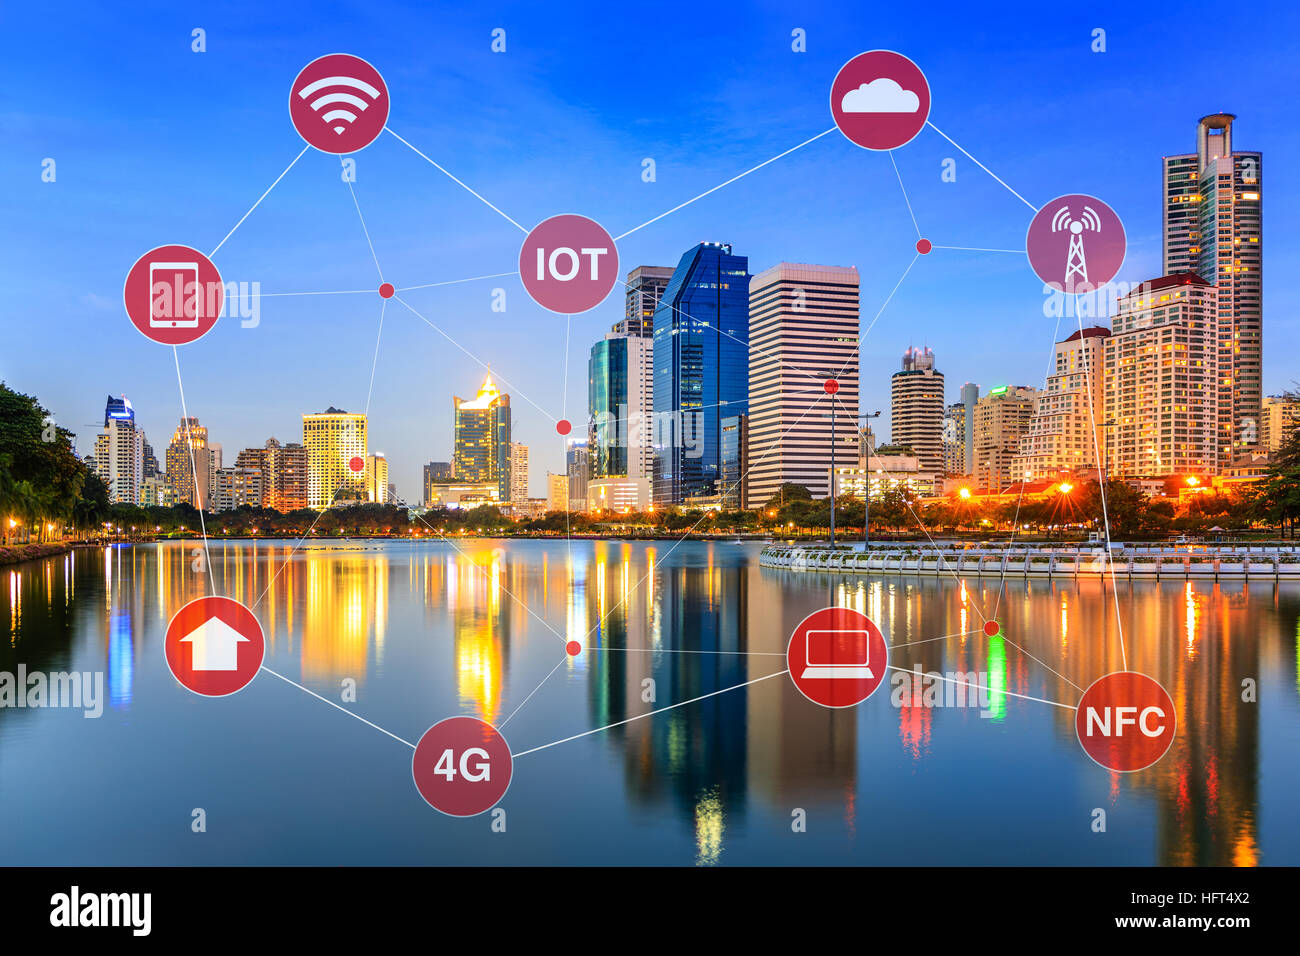 Concept of smart city illustrated by networking and internet of things or IOT. - Stock Image